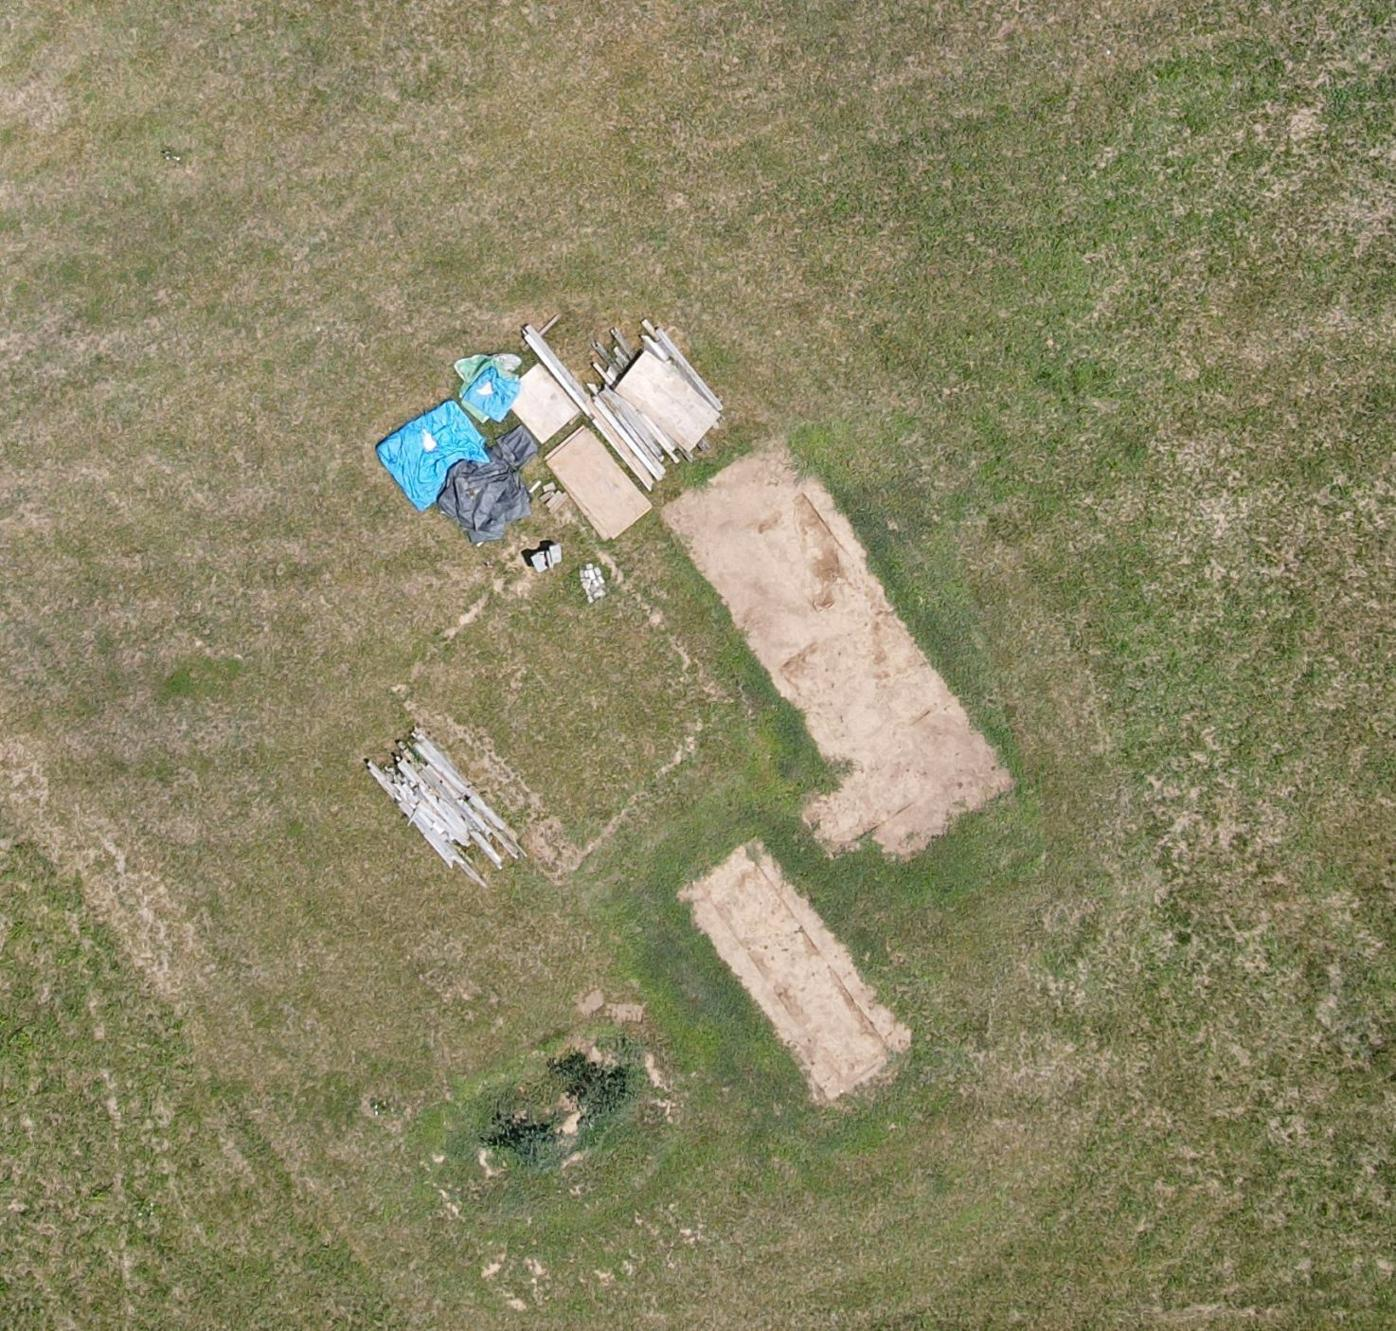 Pax UAS Airspace Coordinator collaborates with local archaeologists